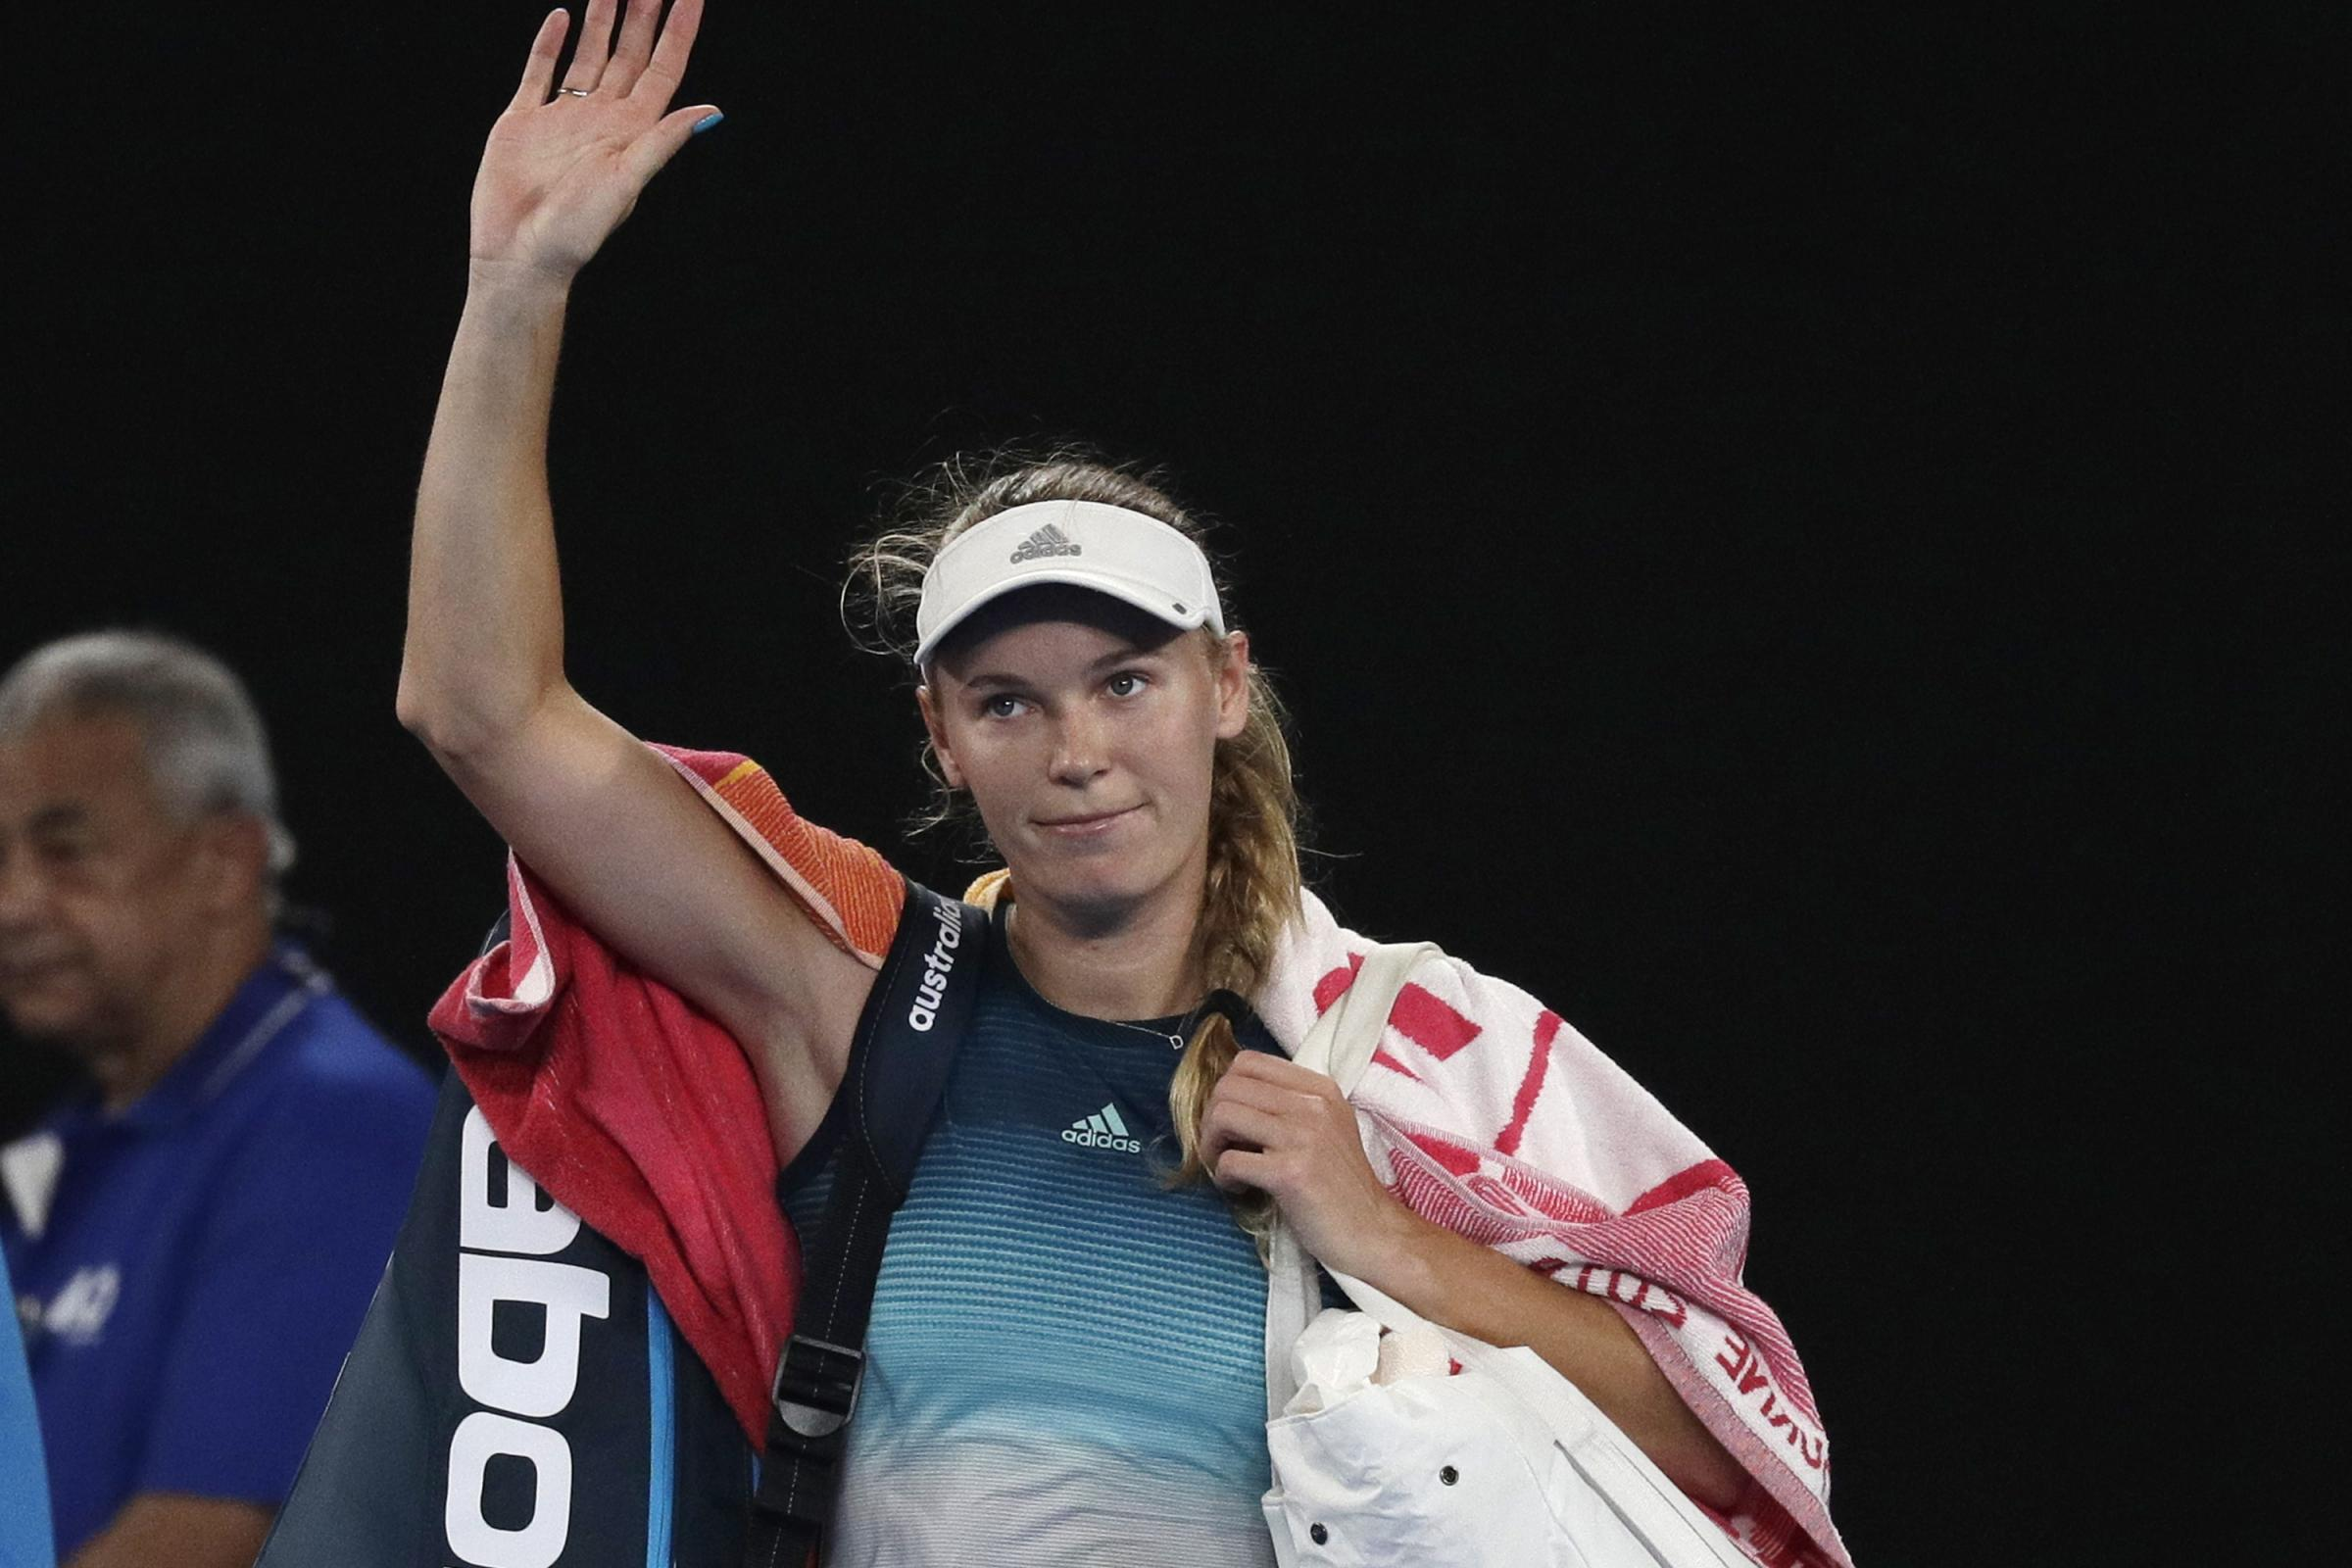 Defending champion Caroline Wozniacki had to say goodbye to the Australian Open